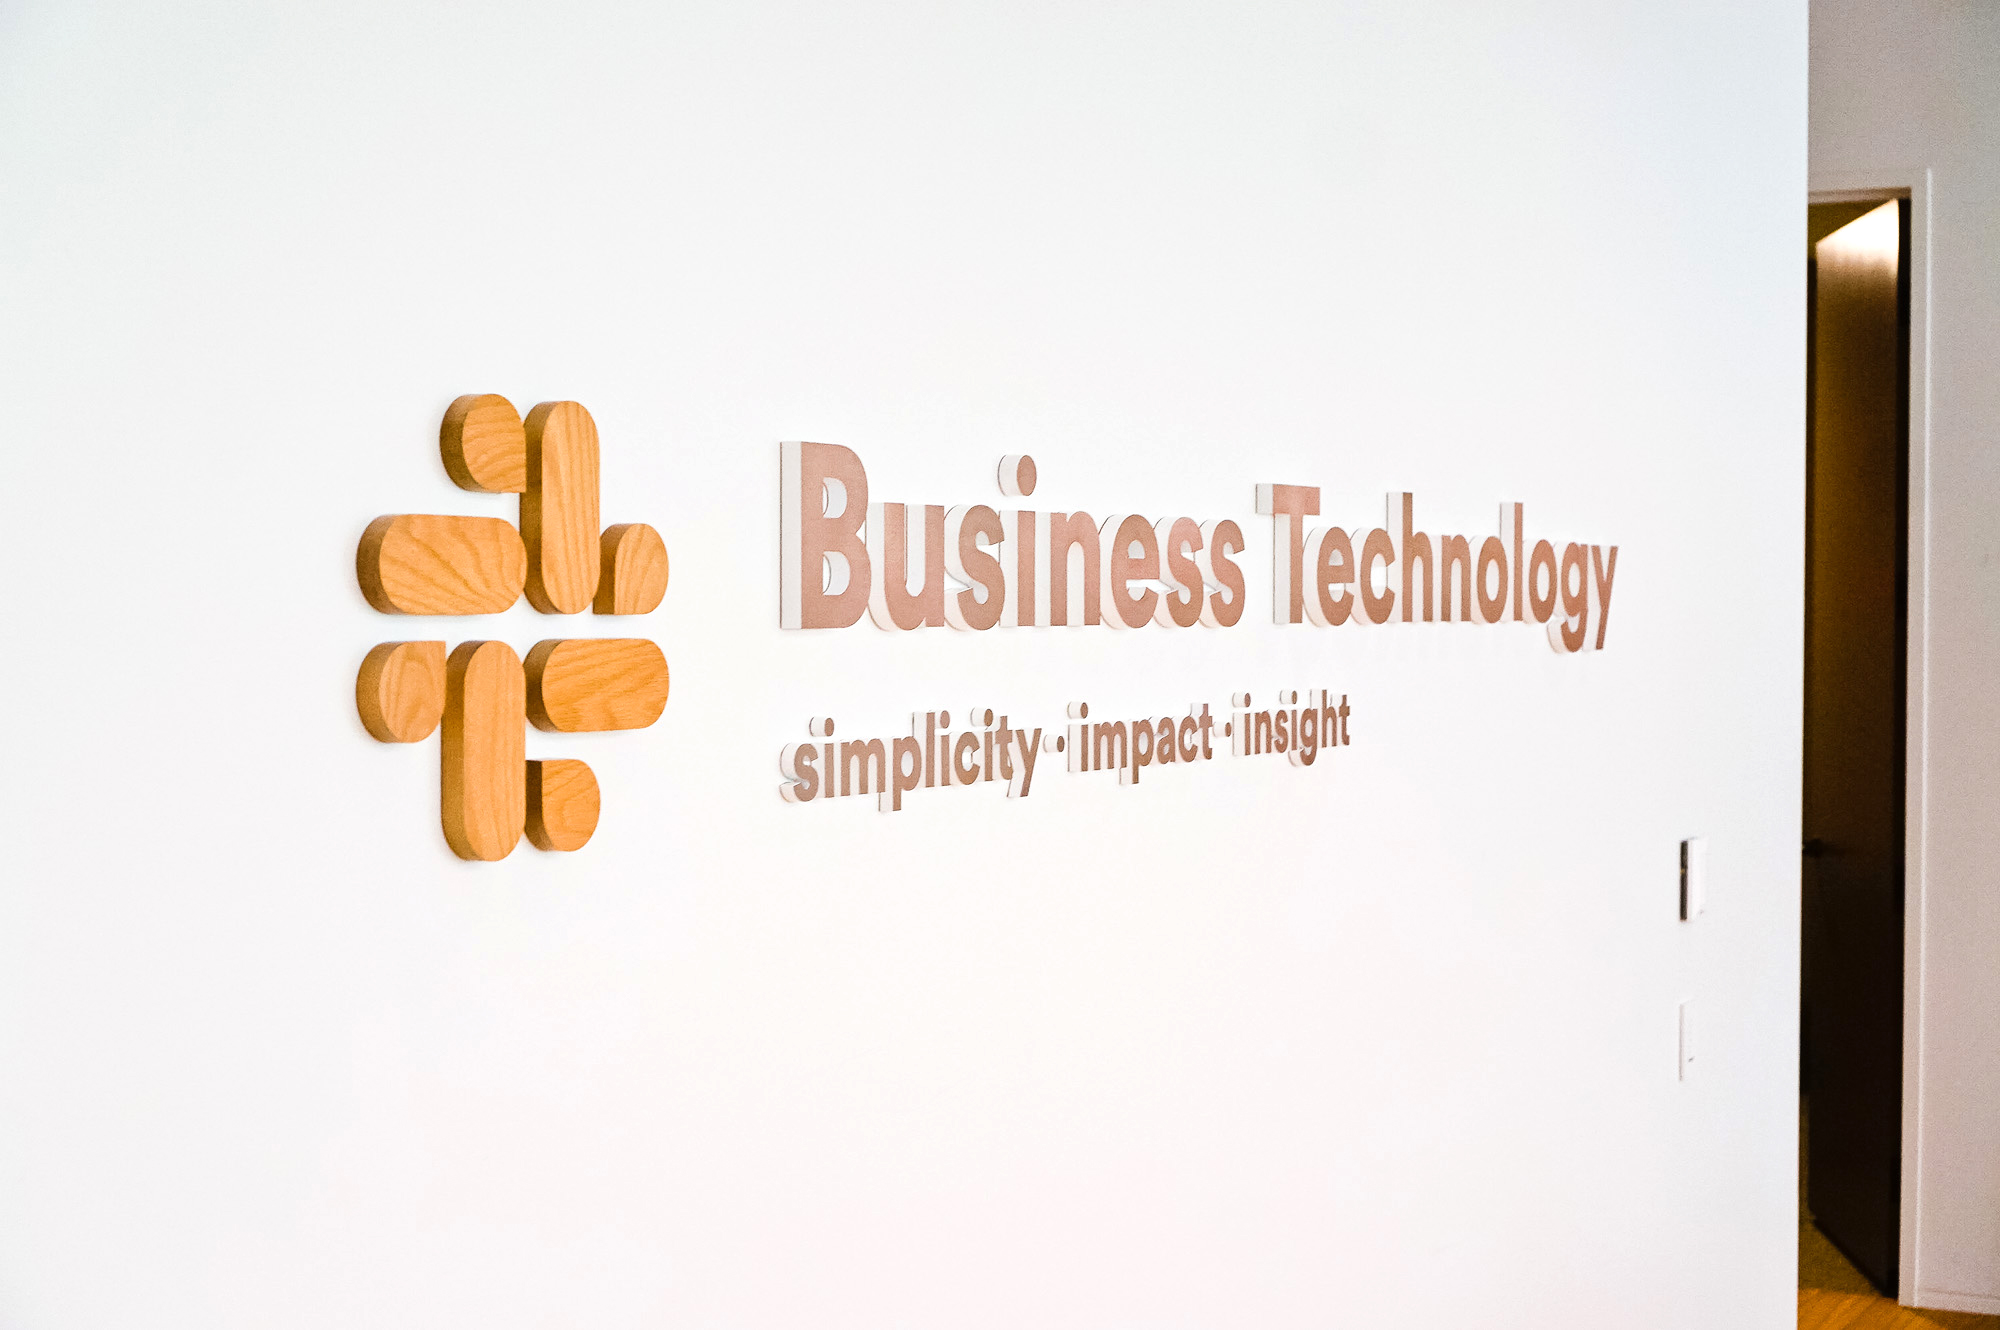 Wood and metal sign for the Business Technology department at Slack, an American cloud-based set of team collaboration tools and services.